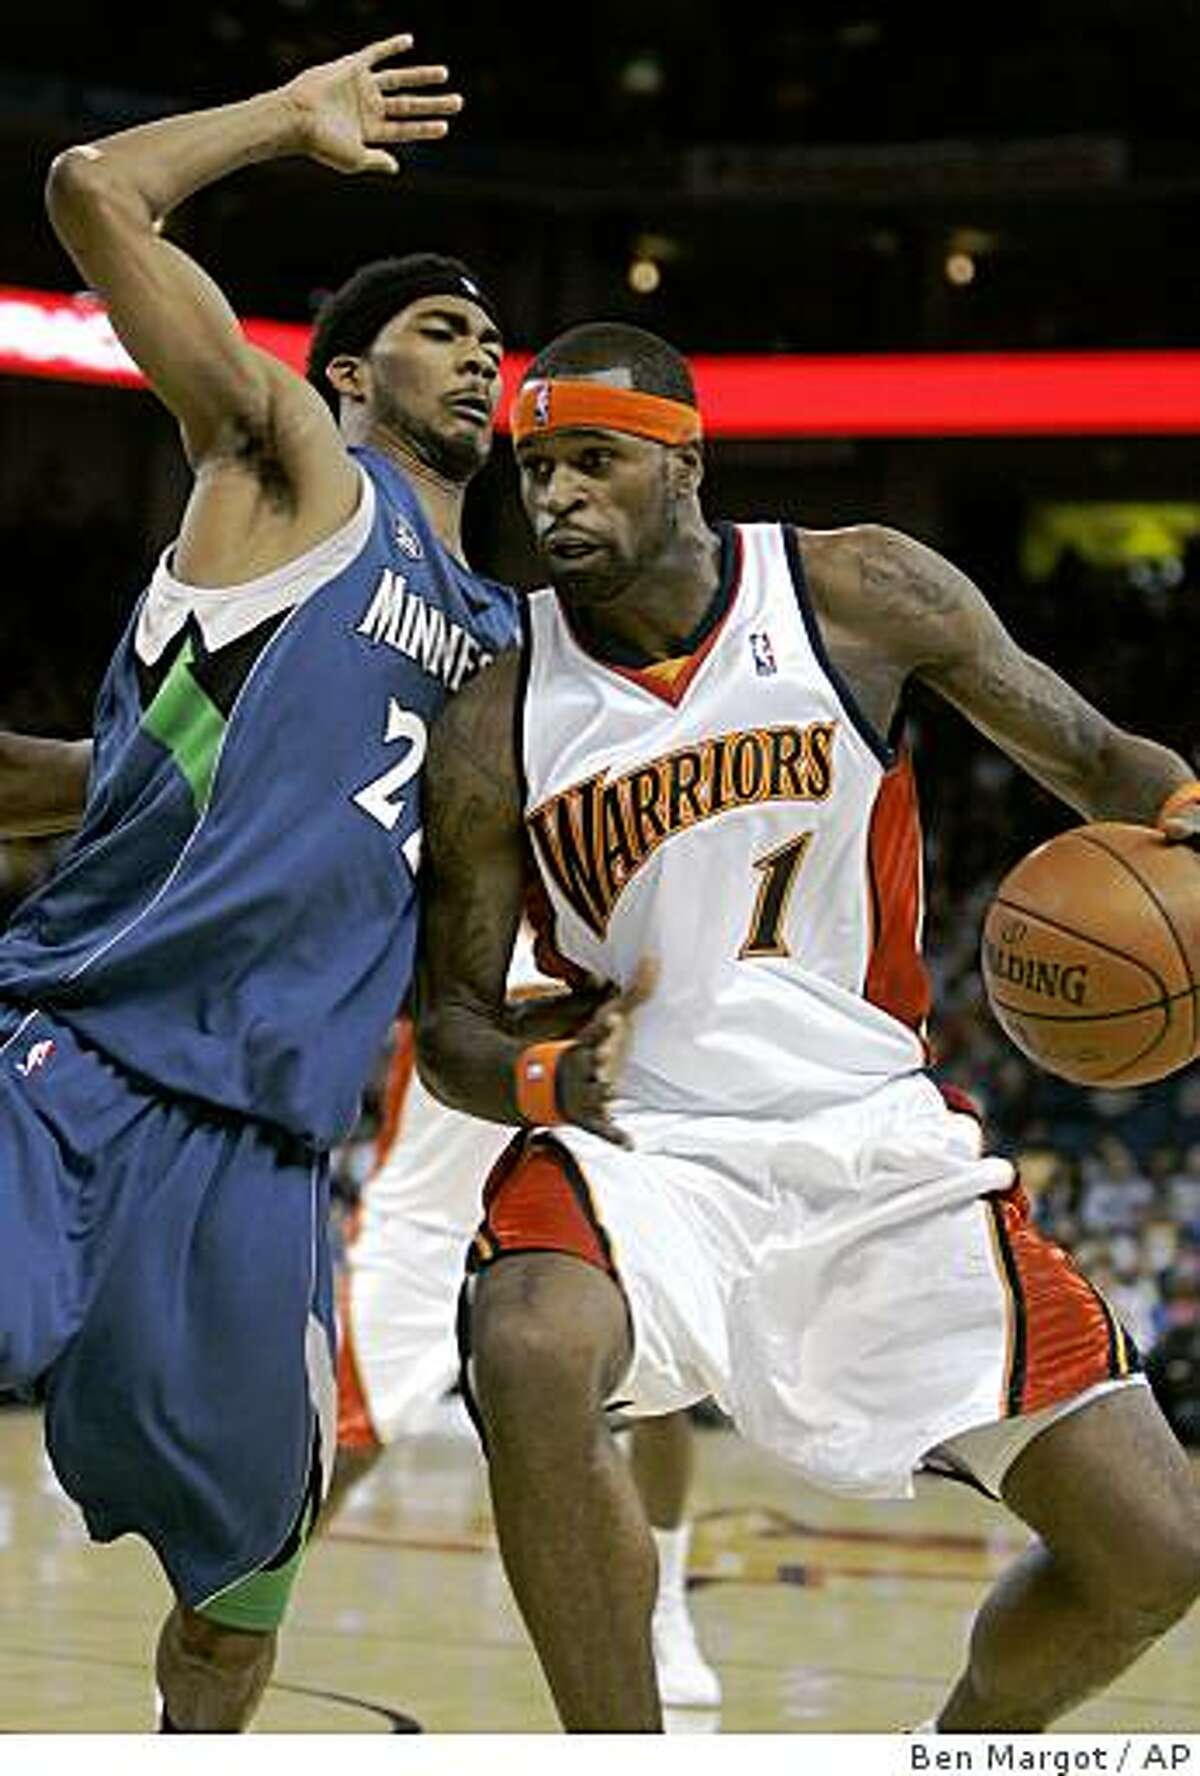 Golden State Warriors' Stephen Jackson (1) drives into Minnesota Timberwolves' Corey Brewer during the first half of an NBA basketball game Tuesday, Nov. 11, 2008, in Oakland, Calif. (AP Photo/Ben Margot)